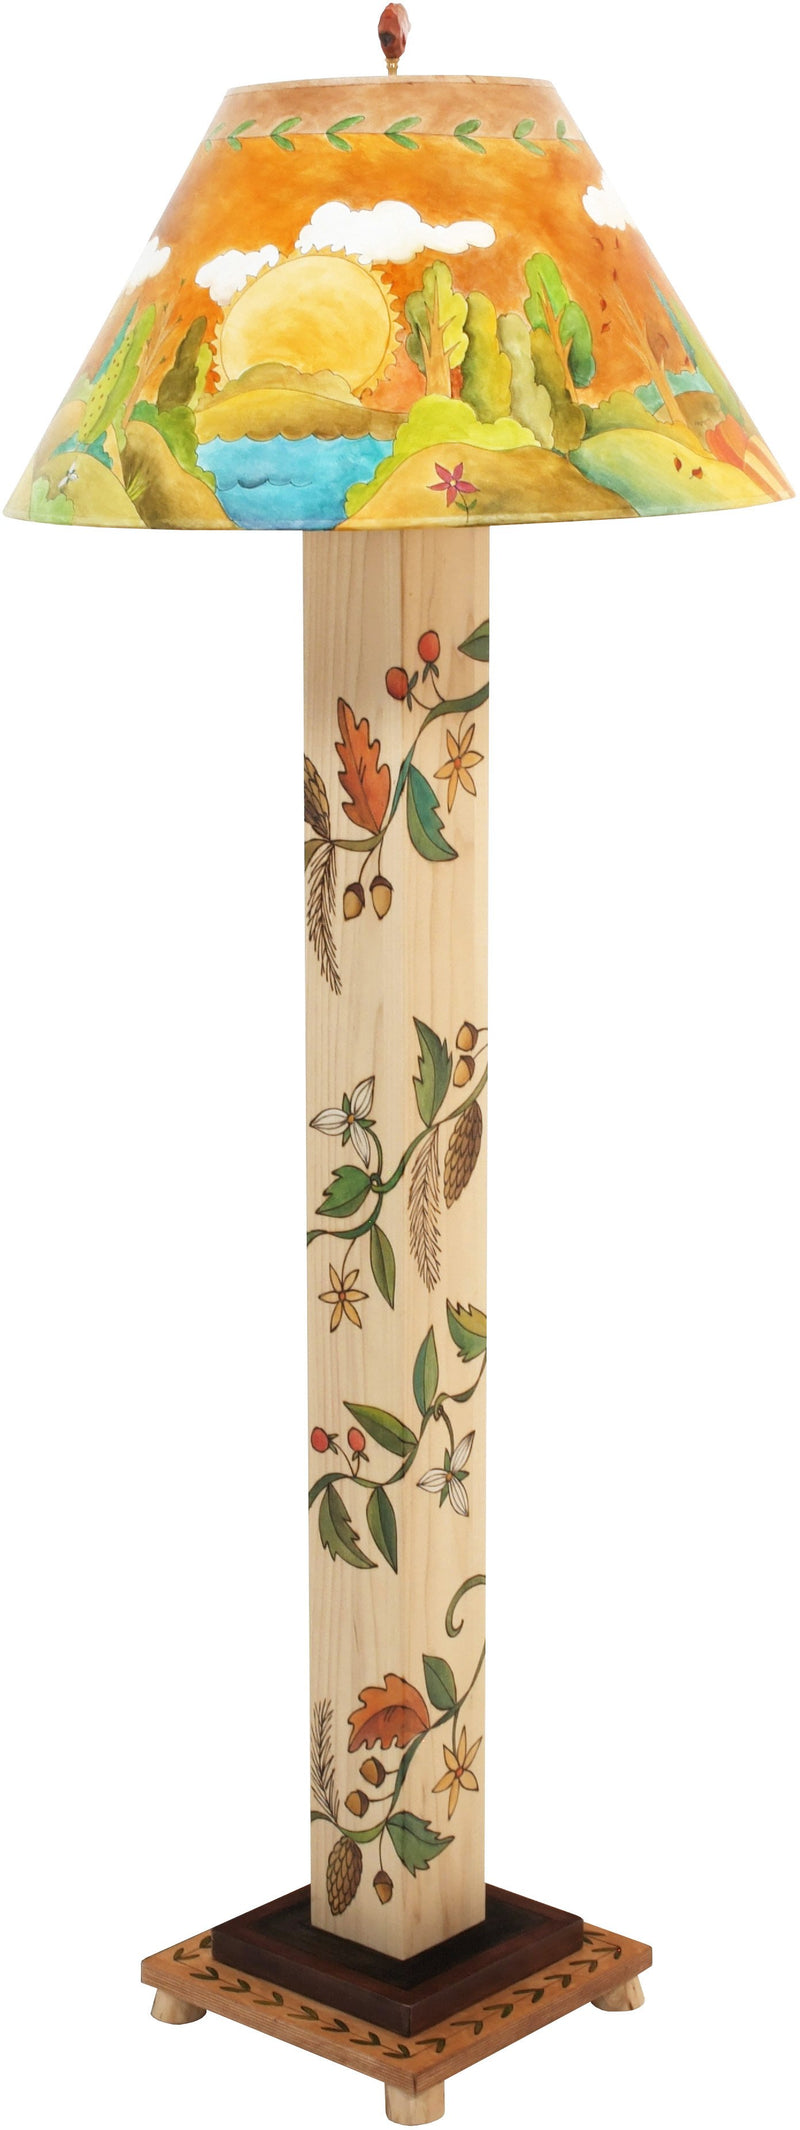 Box Floor Lamp –  Beautiful and elegant floor lamp featuring a circular four seasons landscape painting and vine motifs